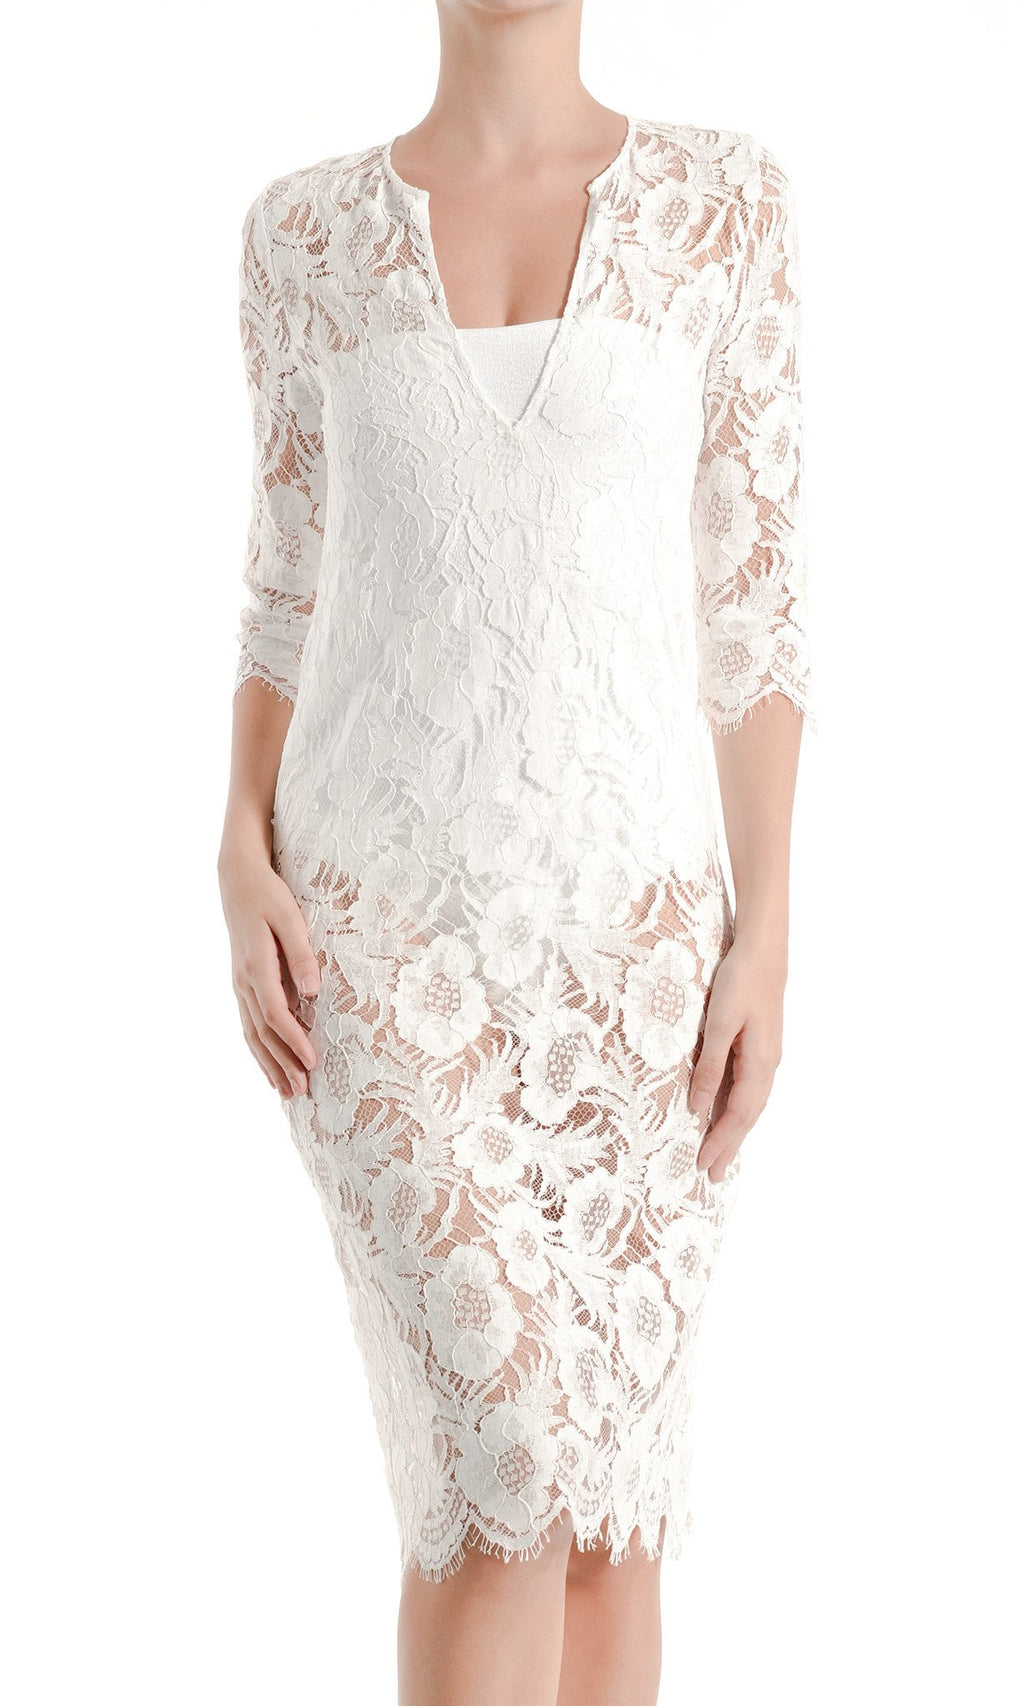 French Lace Midi Dress Marie France Van Damme 0 White